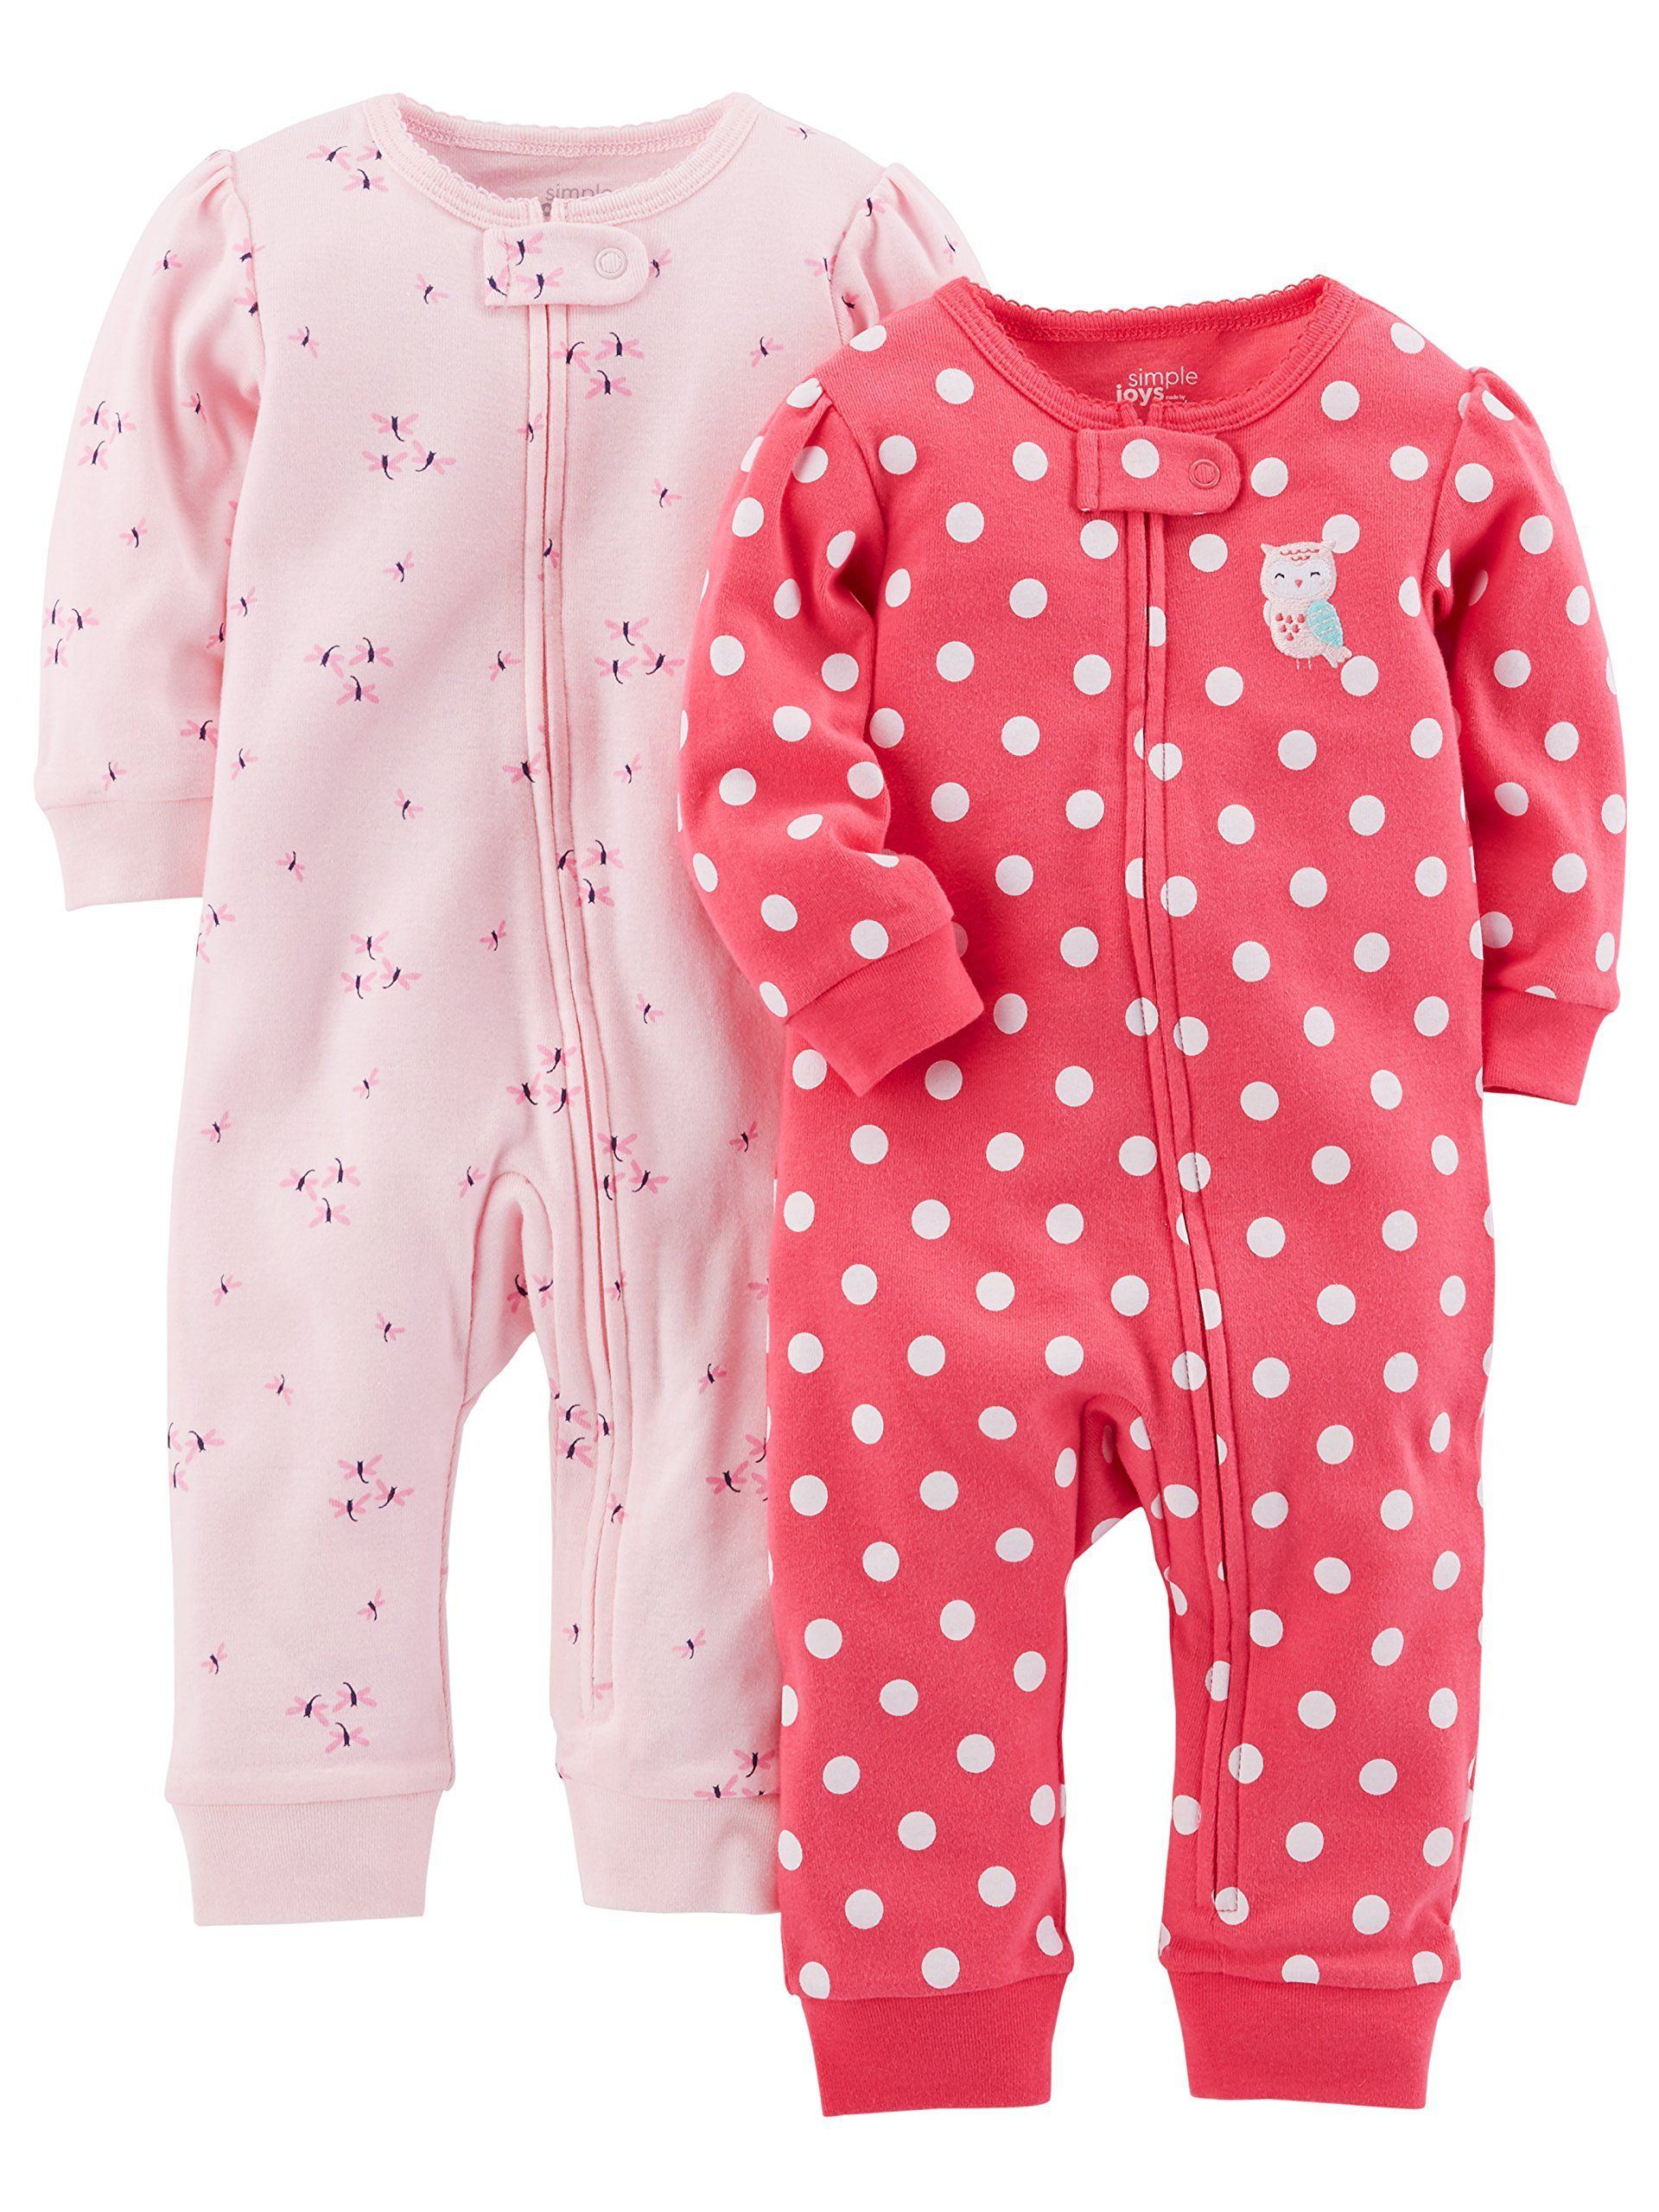 Simple Joys By Carter S Baby Girls 2 Pack Cotton Footless Sleep And Play Pink Dragonfly Dot Without Cuffs 0 3 Months Carters Baby Girl Baby Girl Pajamas Baby Clothes Online